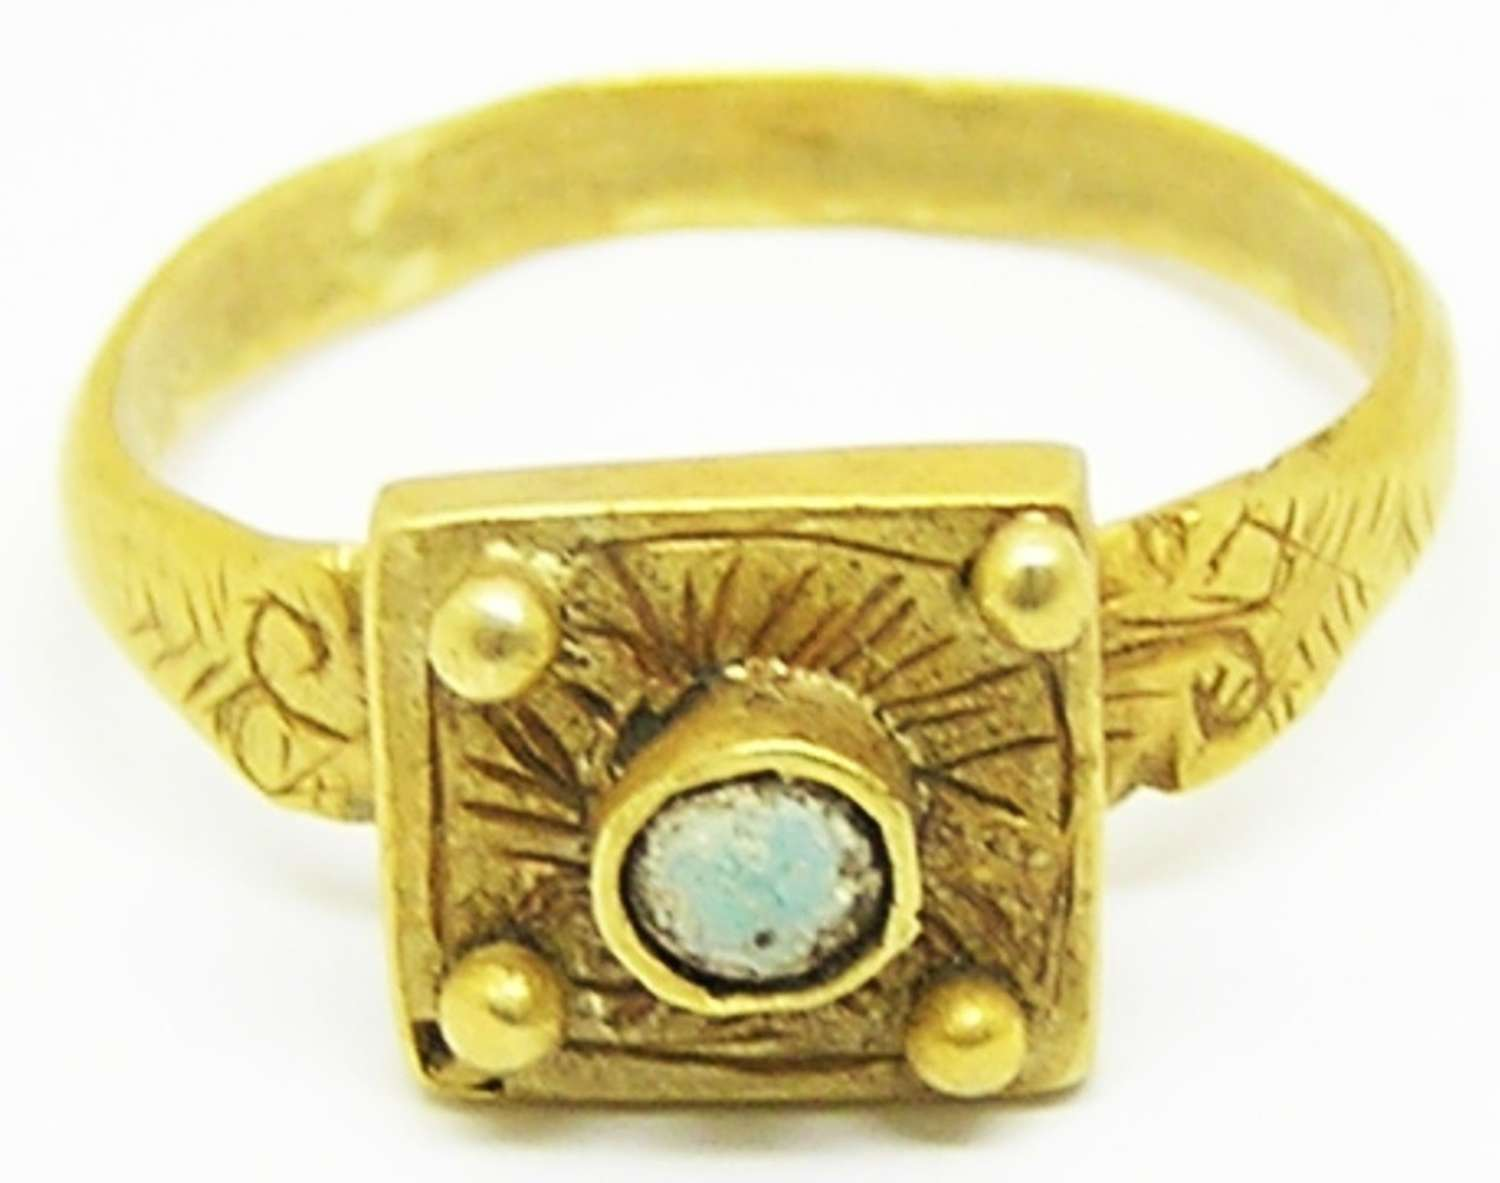 Medieval Norman period Romanesque gold ring